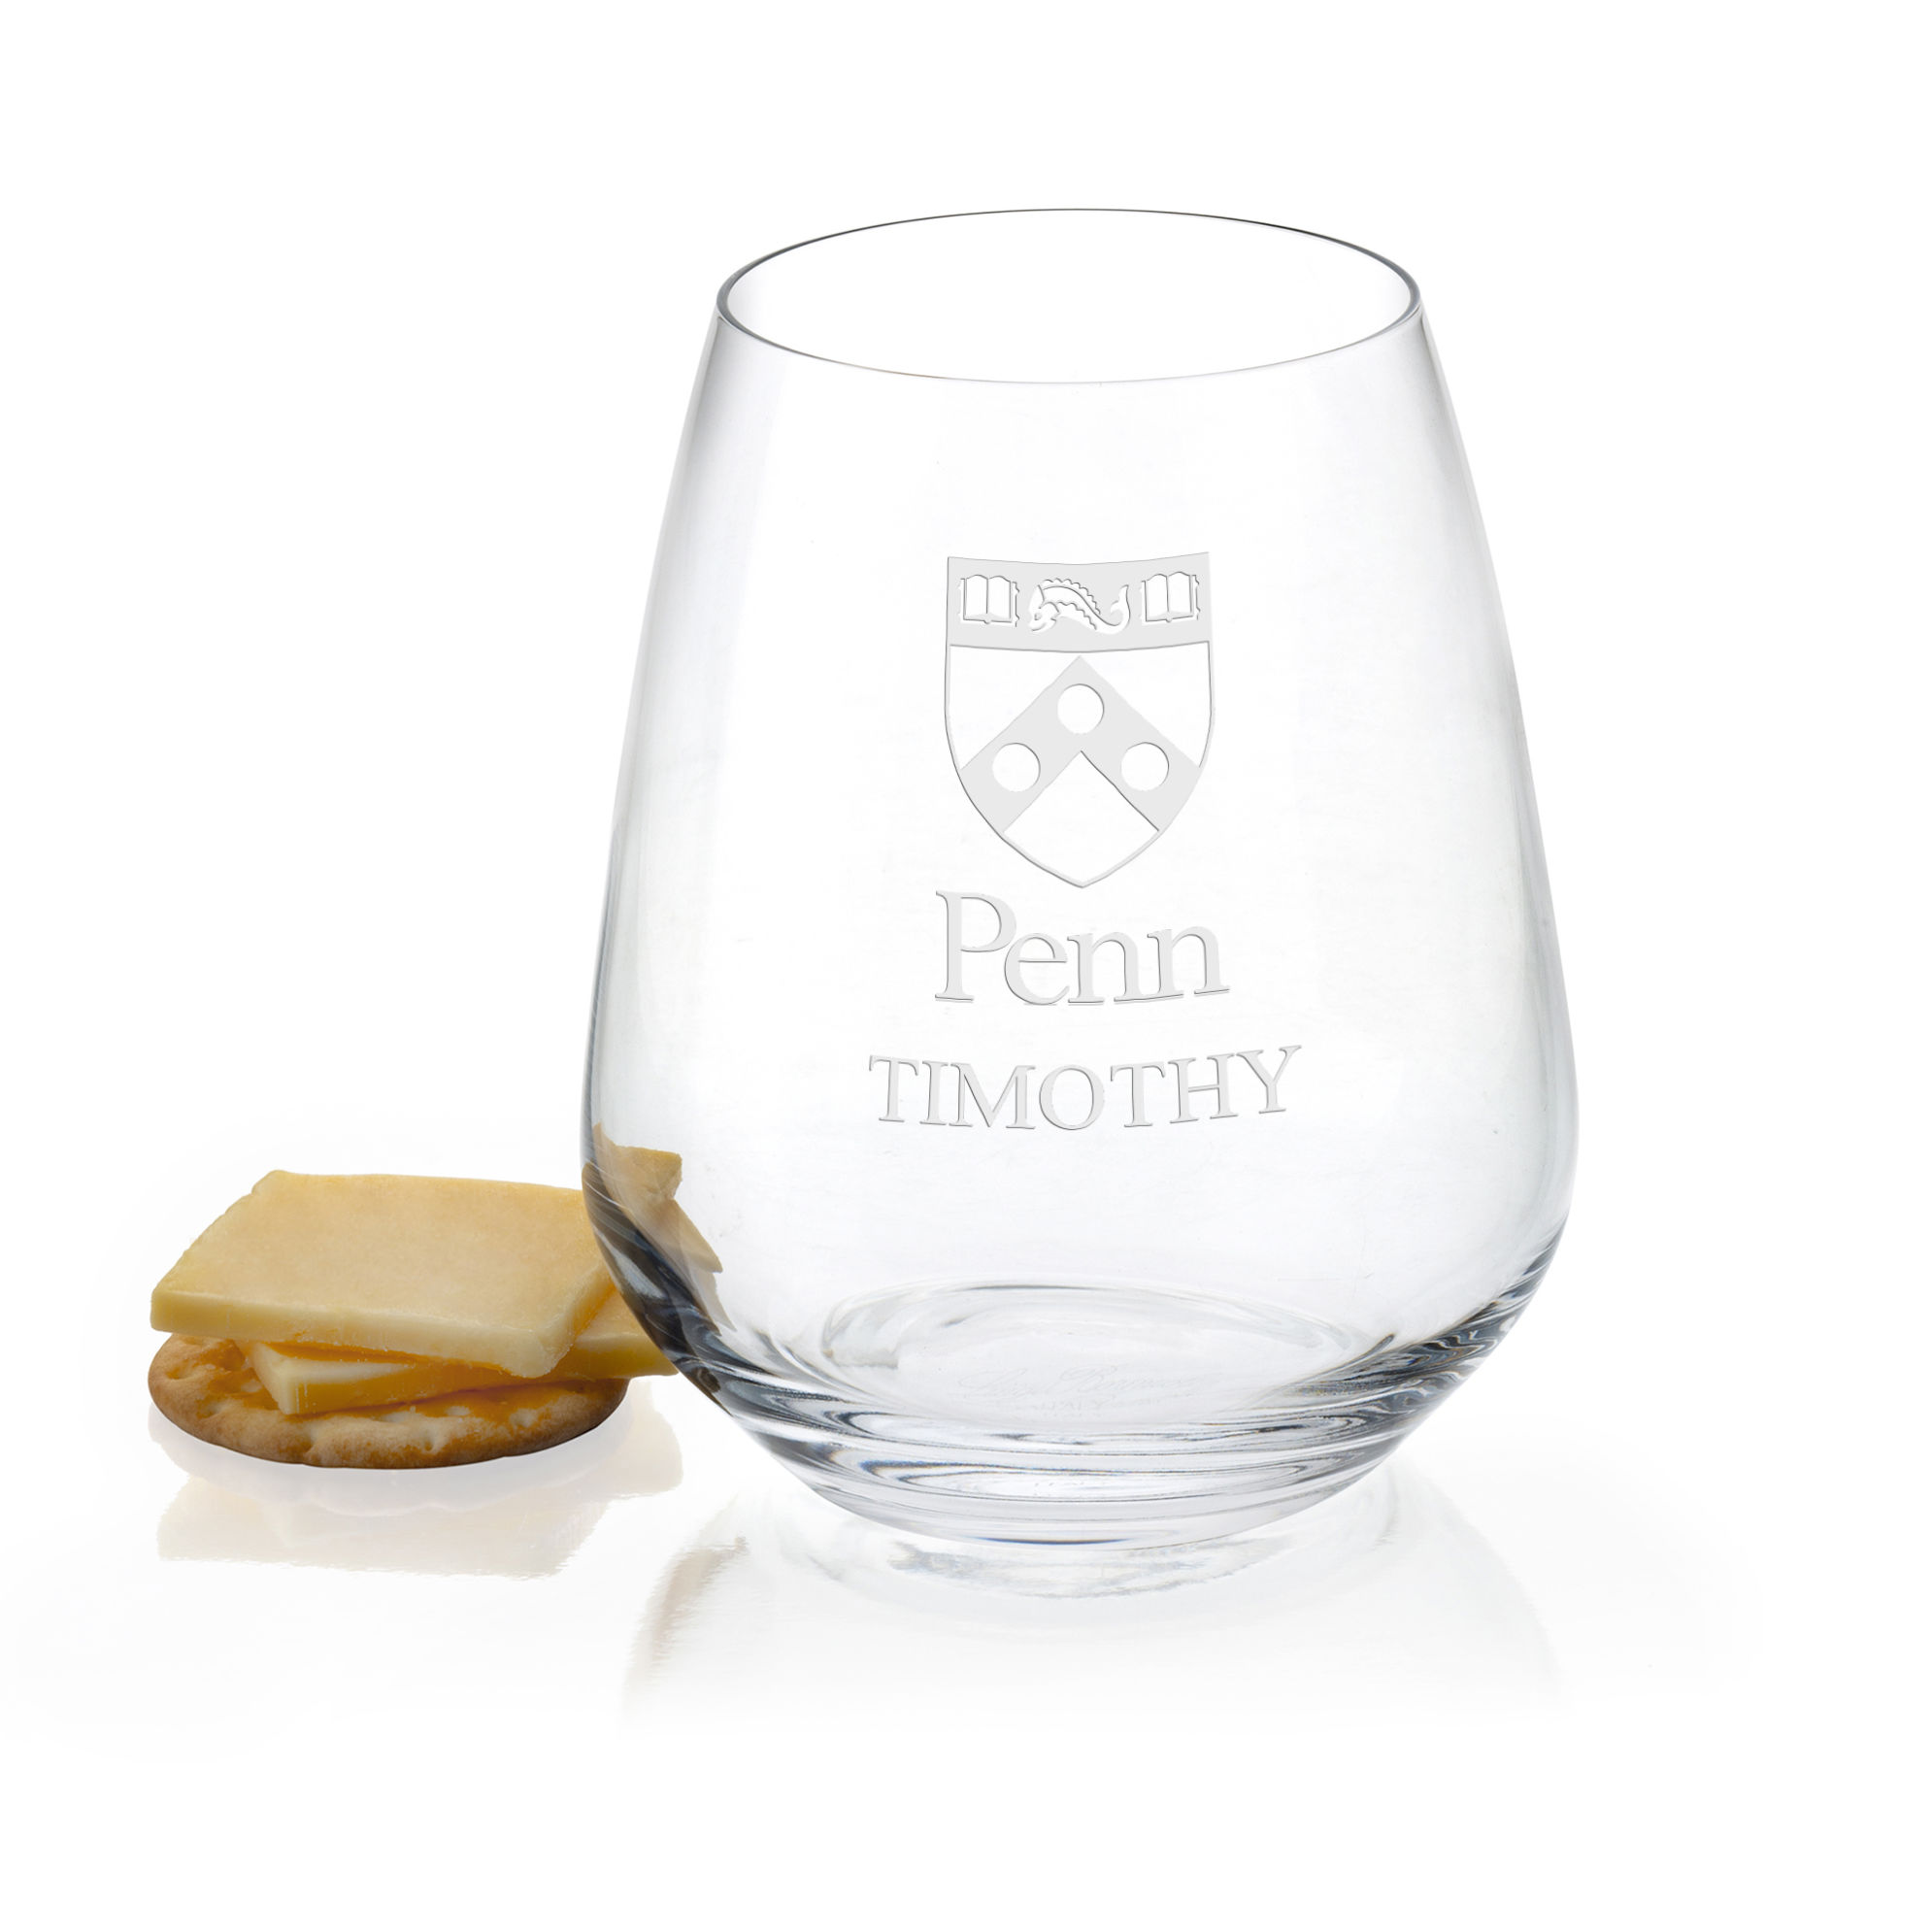 University of Pennsylvania Stemless Wine Glasses - Set of 4